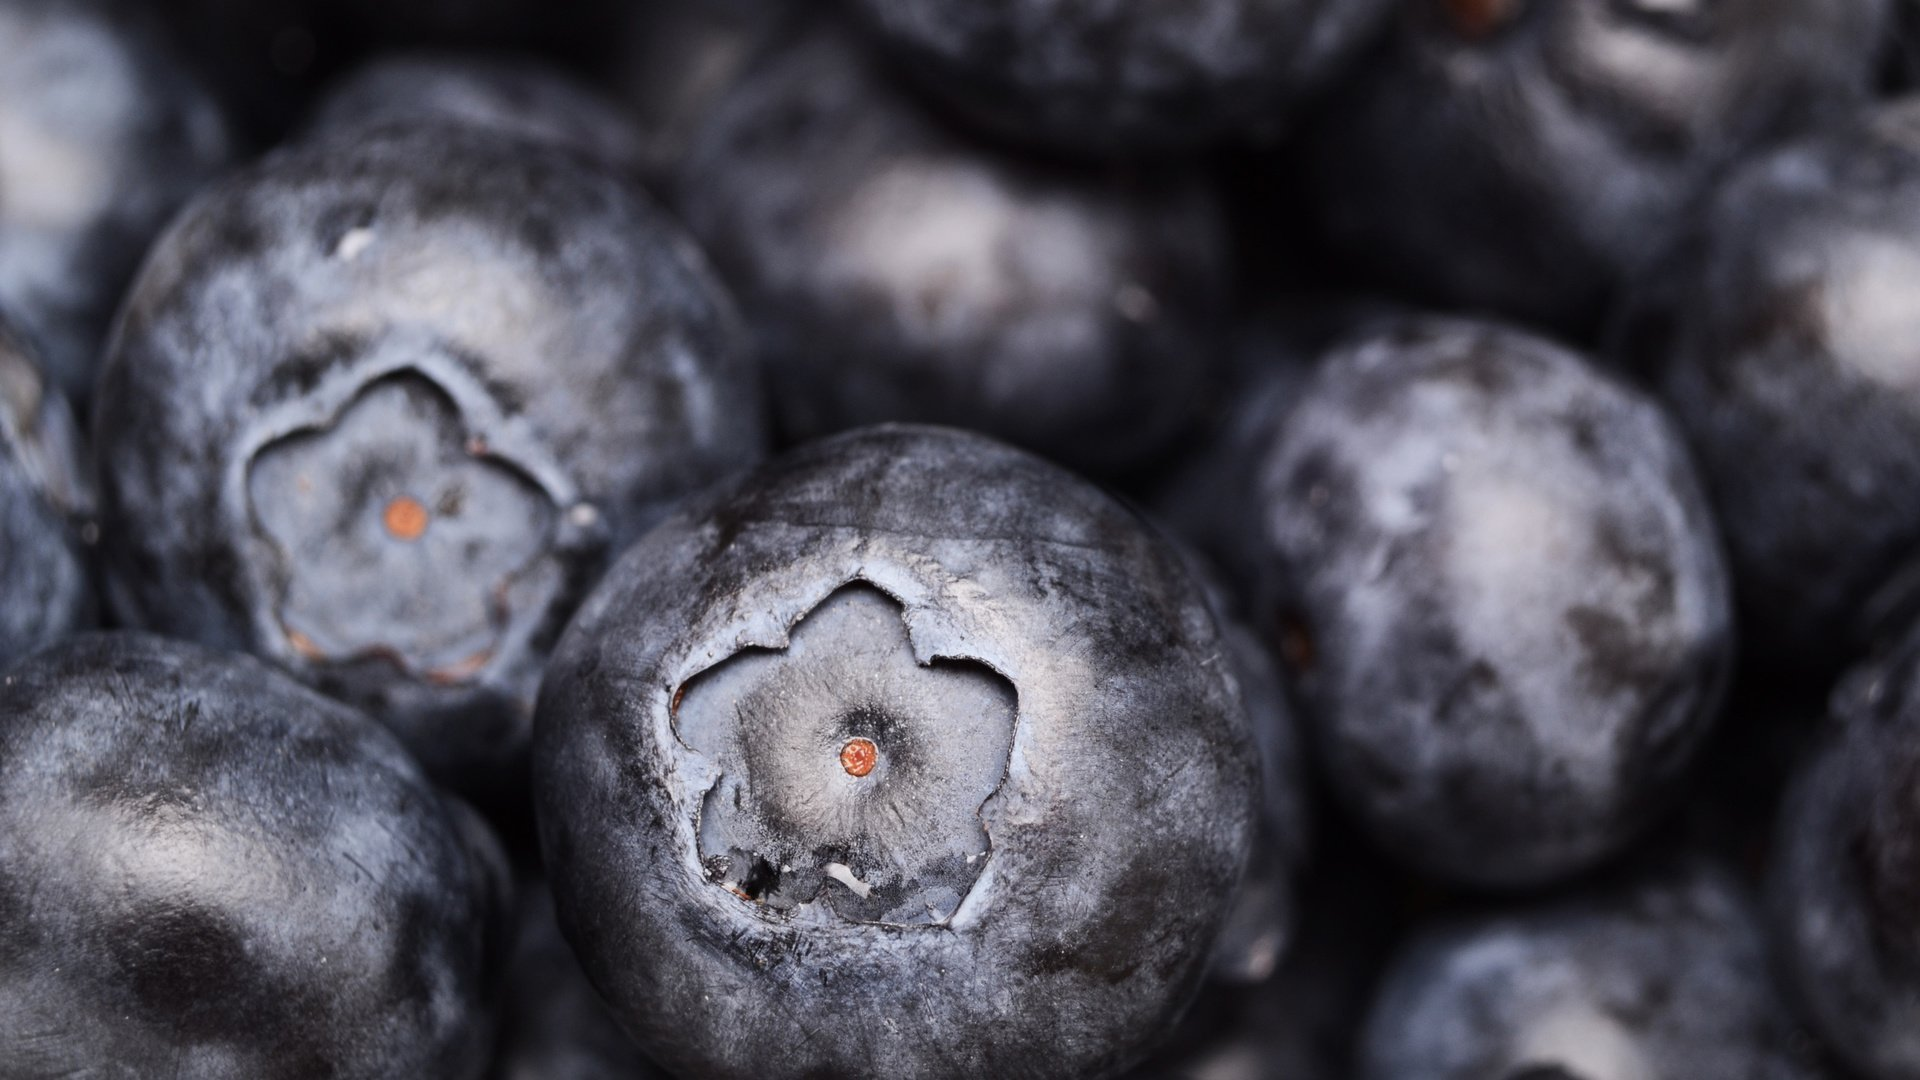 Blueberry download wallpaper image